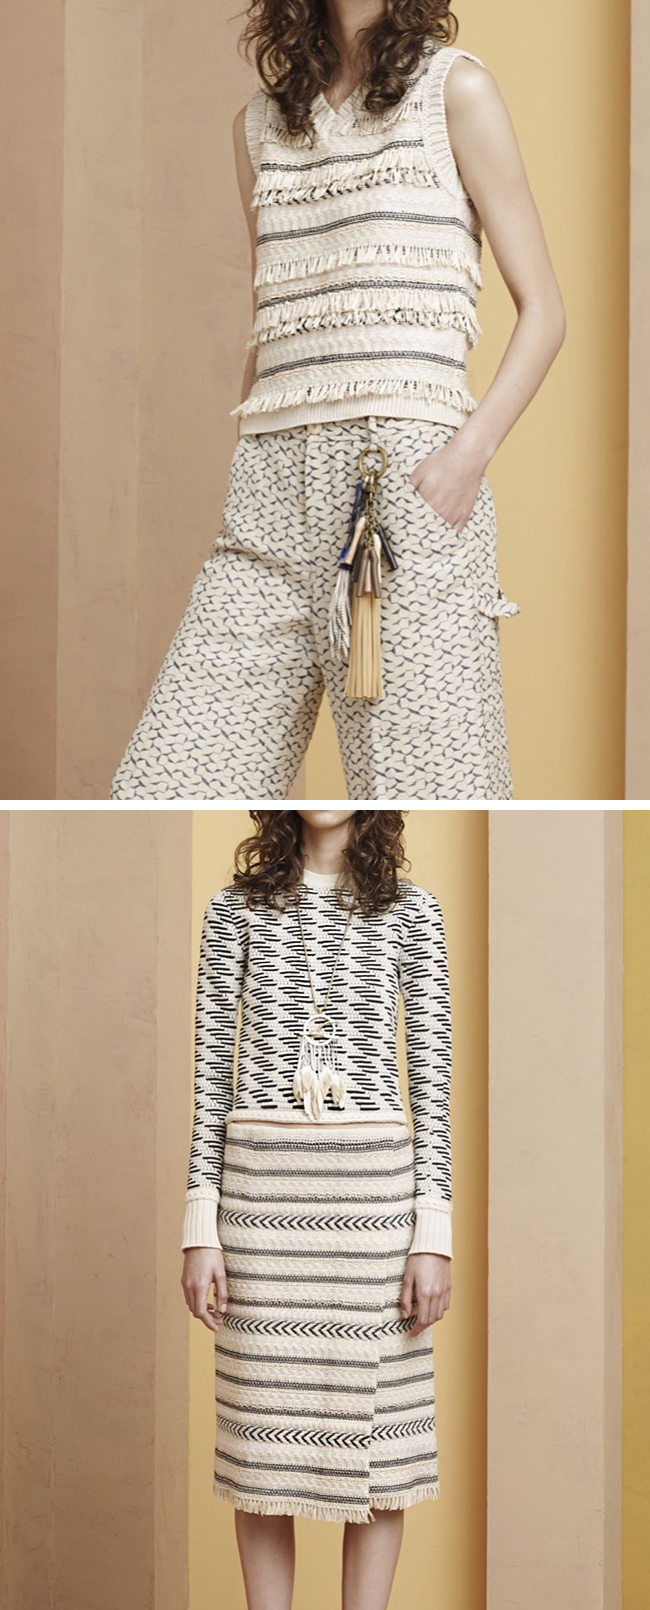 Best of the Best Knits of Resort 2016: Tory Burch